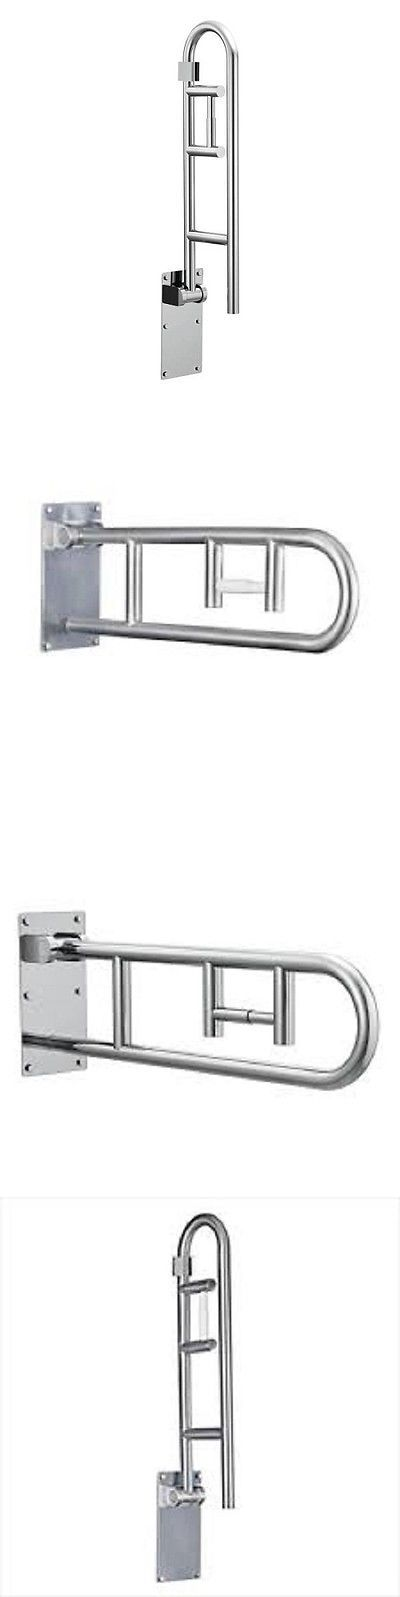 Handles and Rails: Rail Frame Bathroom Safety Grab Bar Handicap Holder Handle Aid Toilet Support BUY IT NOW ONLY: $121.99